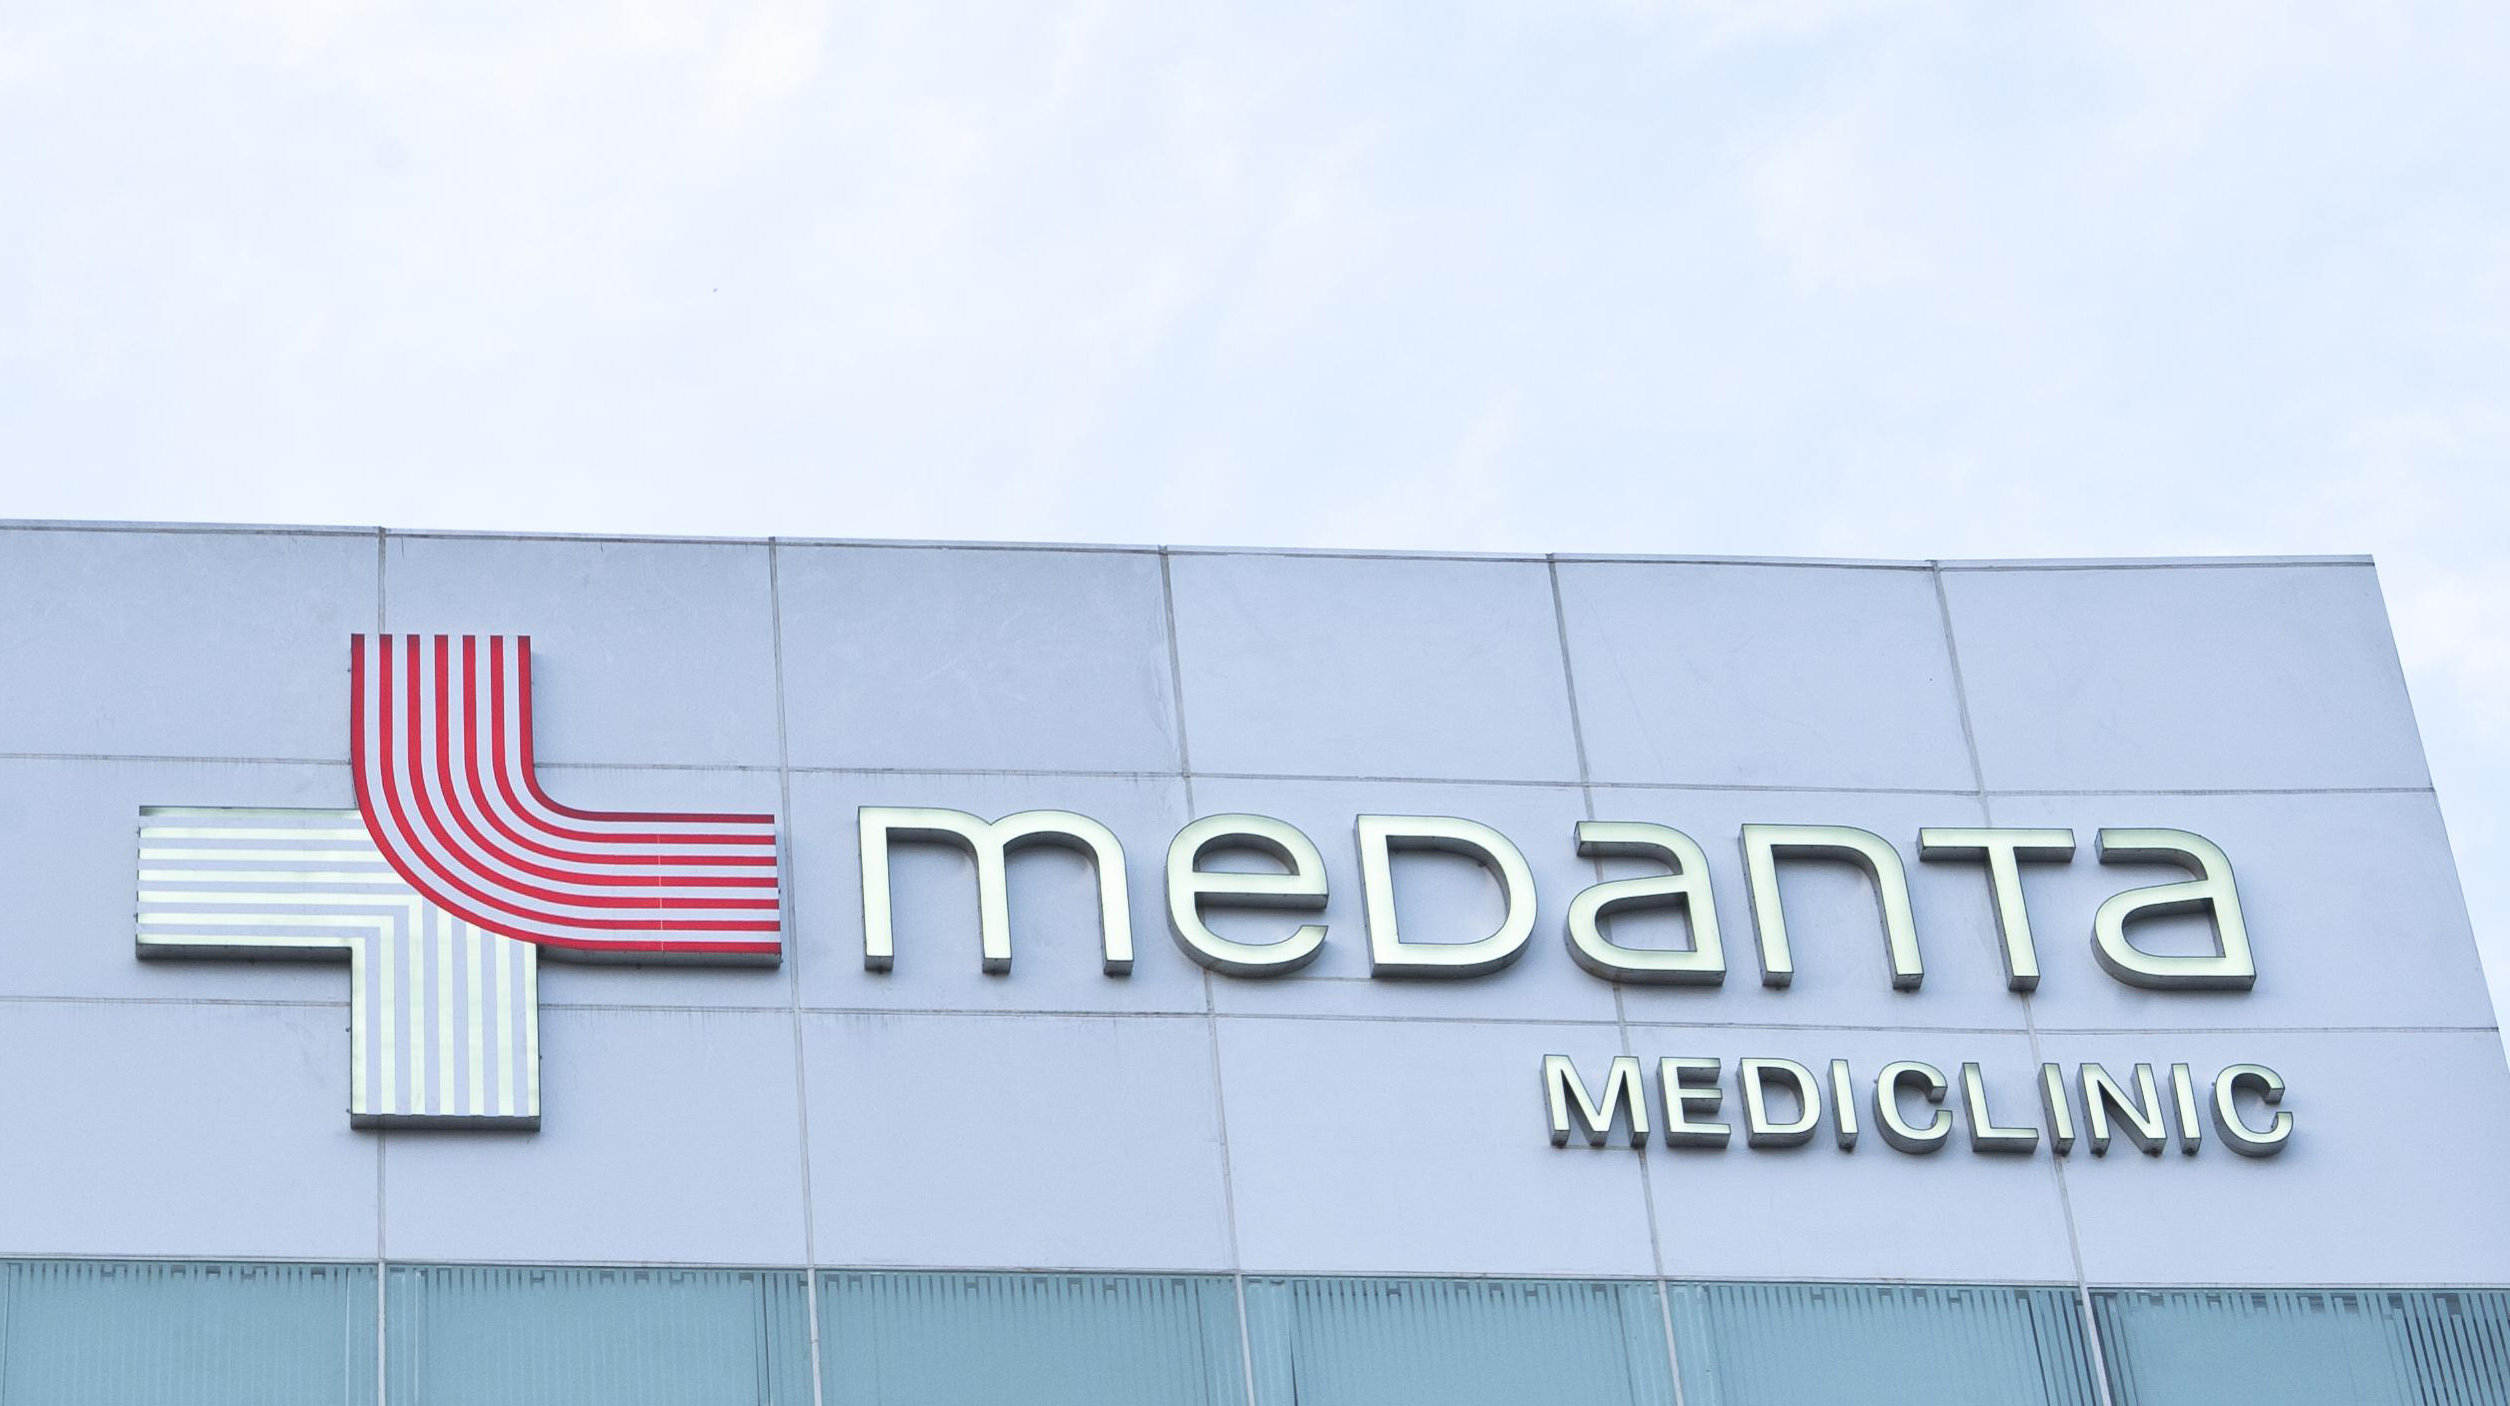 Medanta to invest 750-1000 crore on a high-end hospital